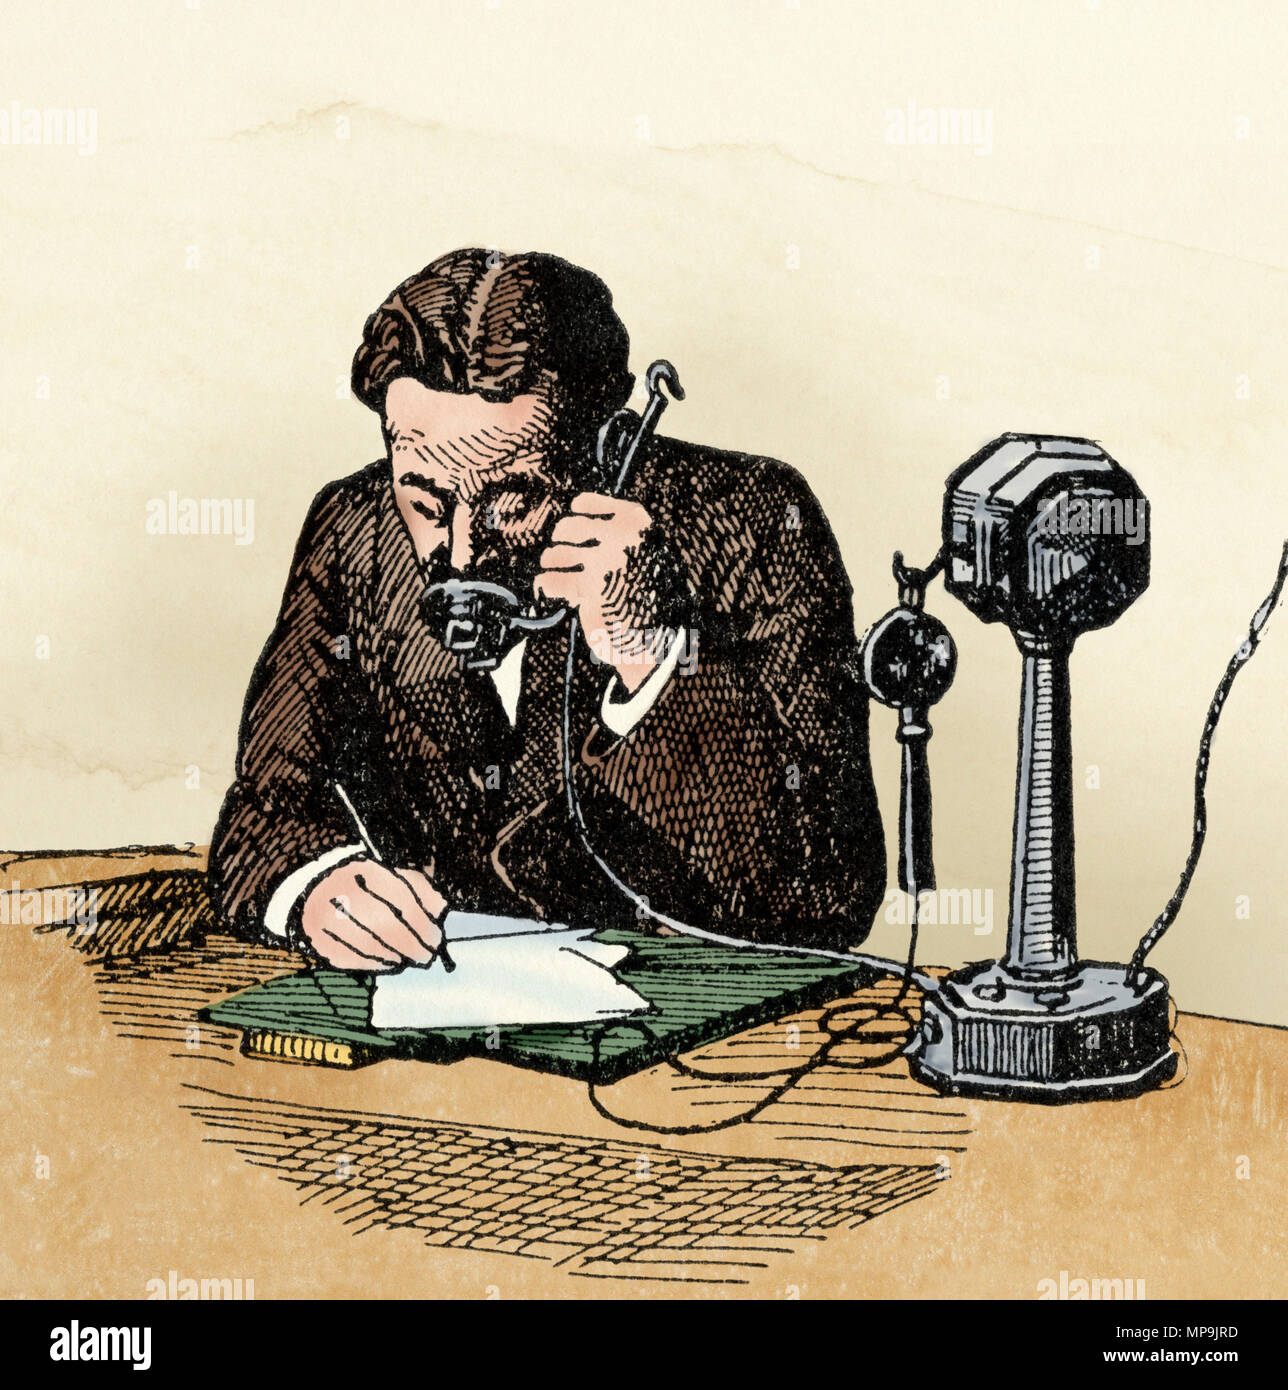 Invention Of Telephone Stock Photos Transmitter Early Combining The And Receiver 1800s Digitally Colored Woodcut Image